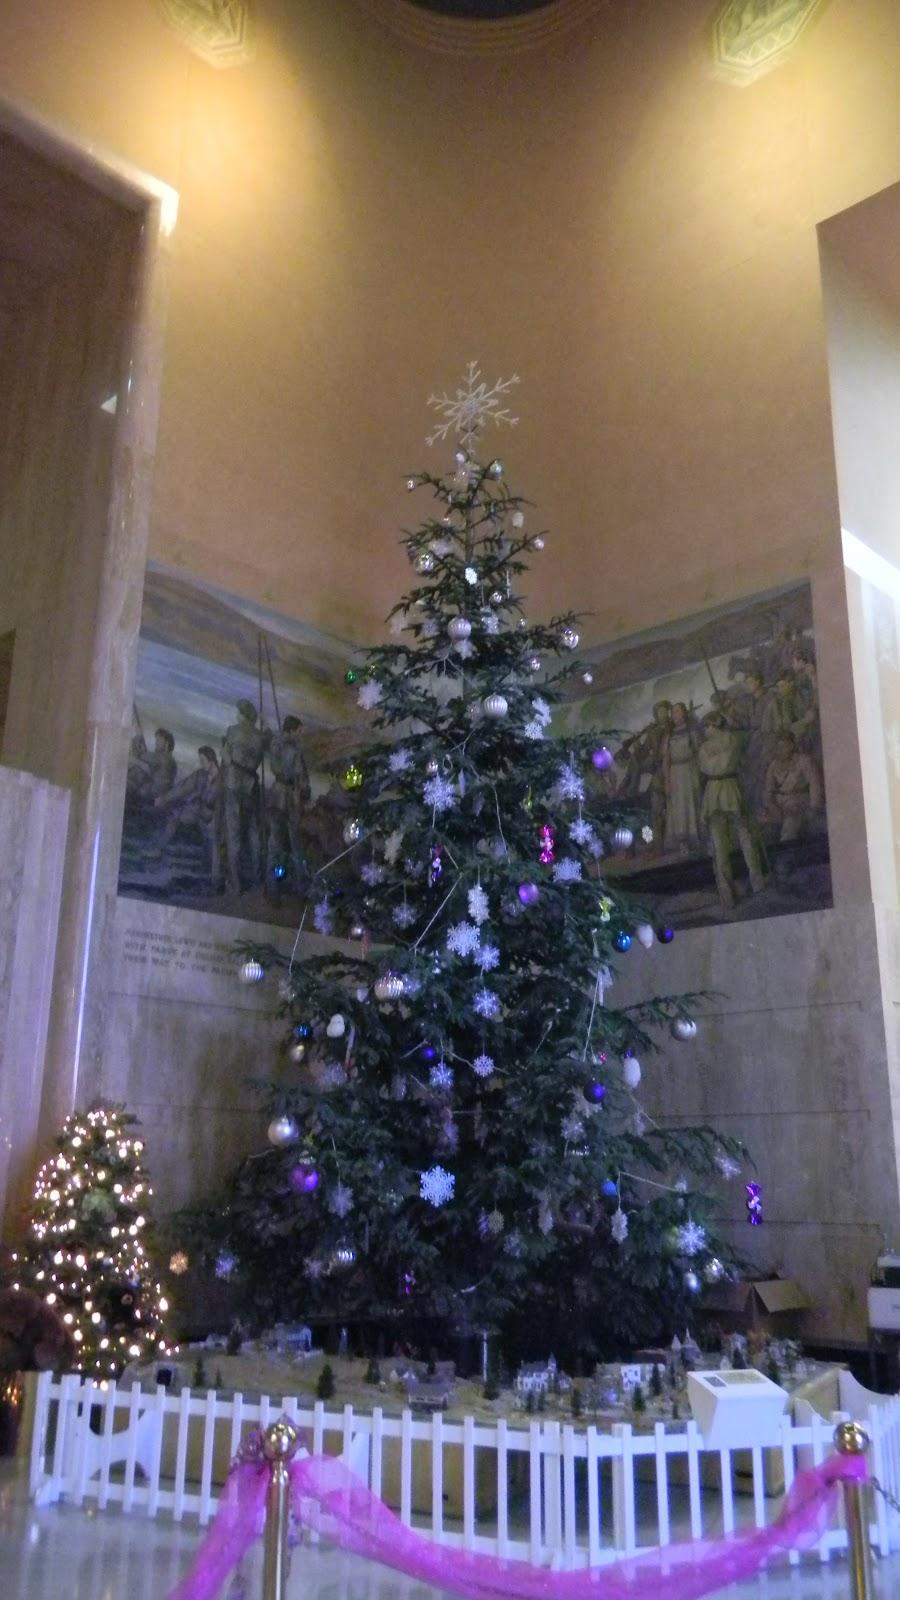 Trees, Choirs And Politicians: Holidays At The Oregon Capitol | NW ...